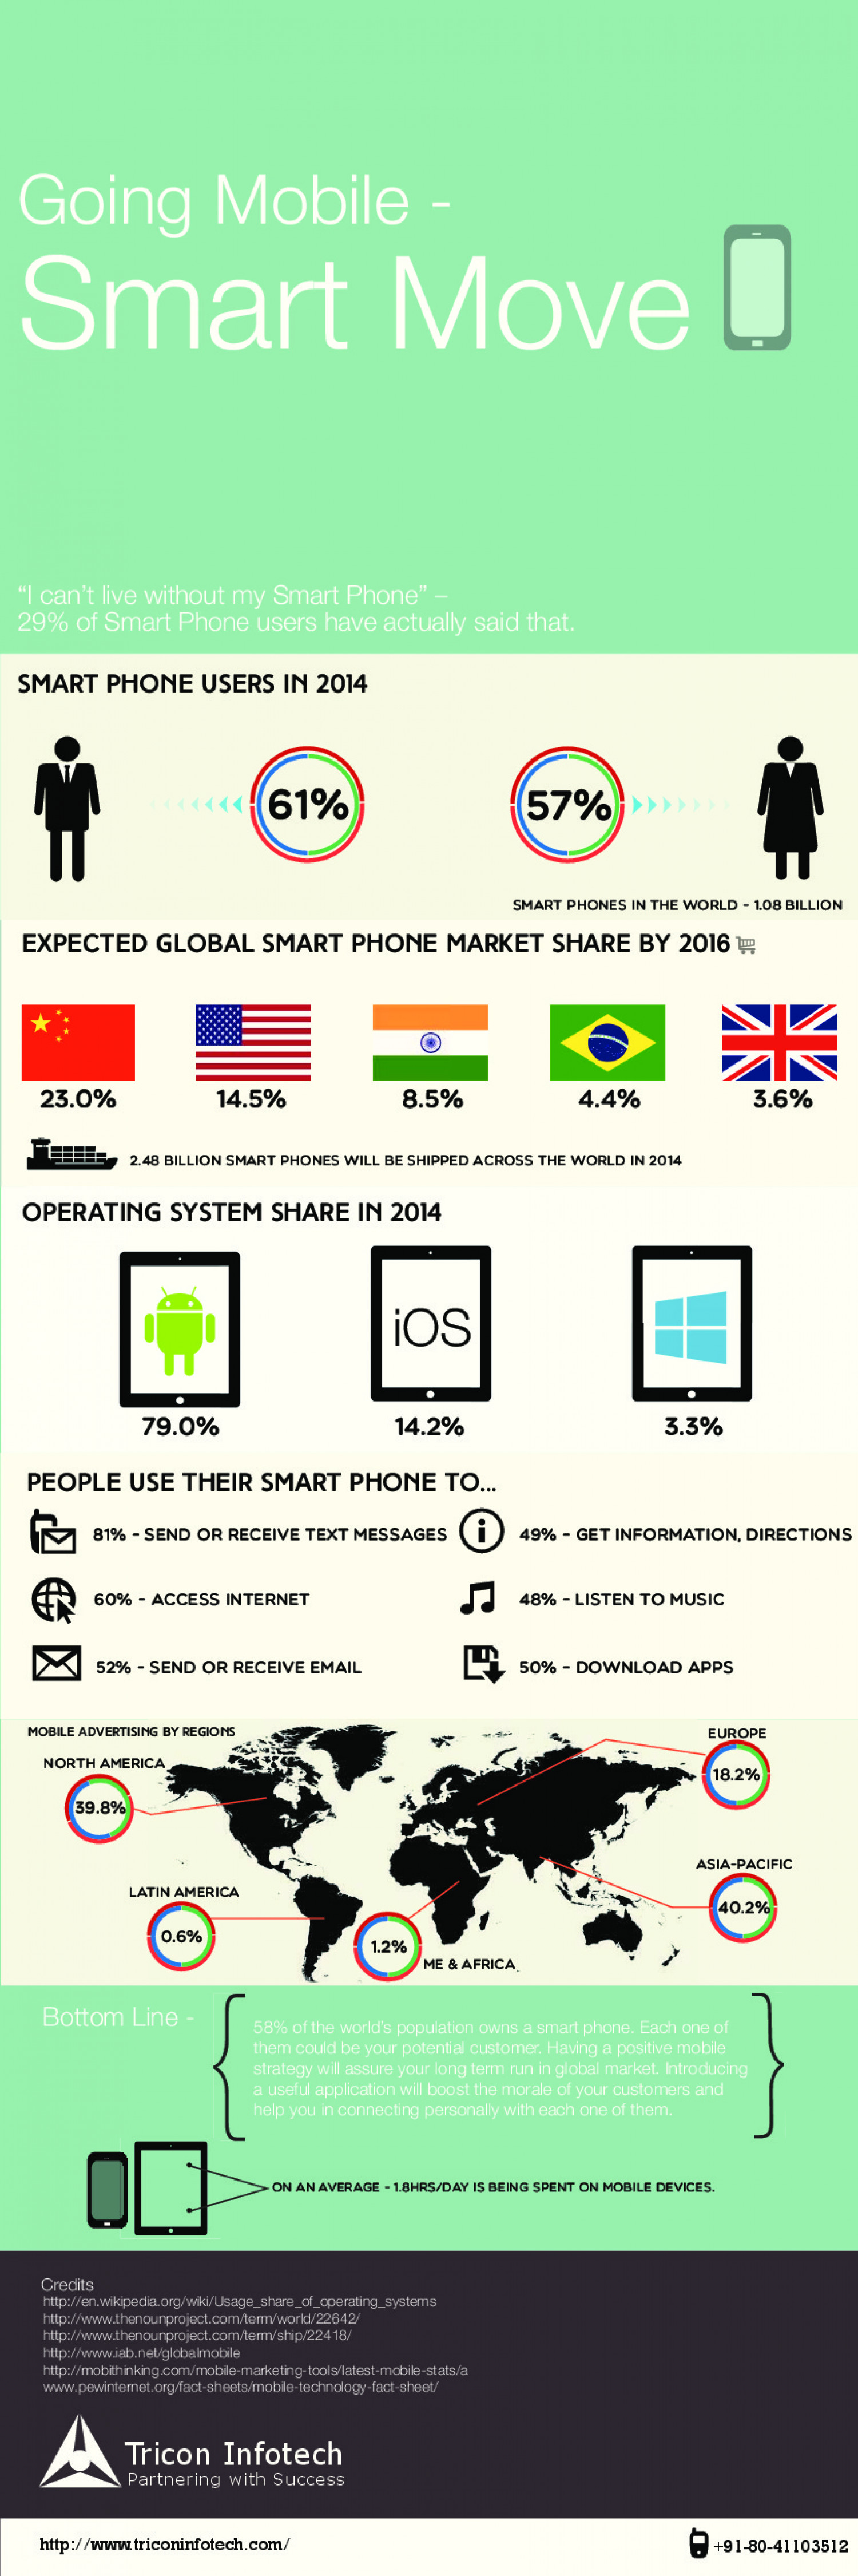 Going Mobile: Smart Move Infographic